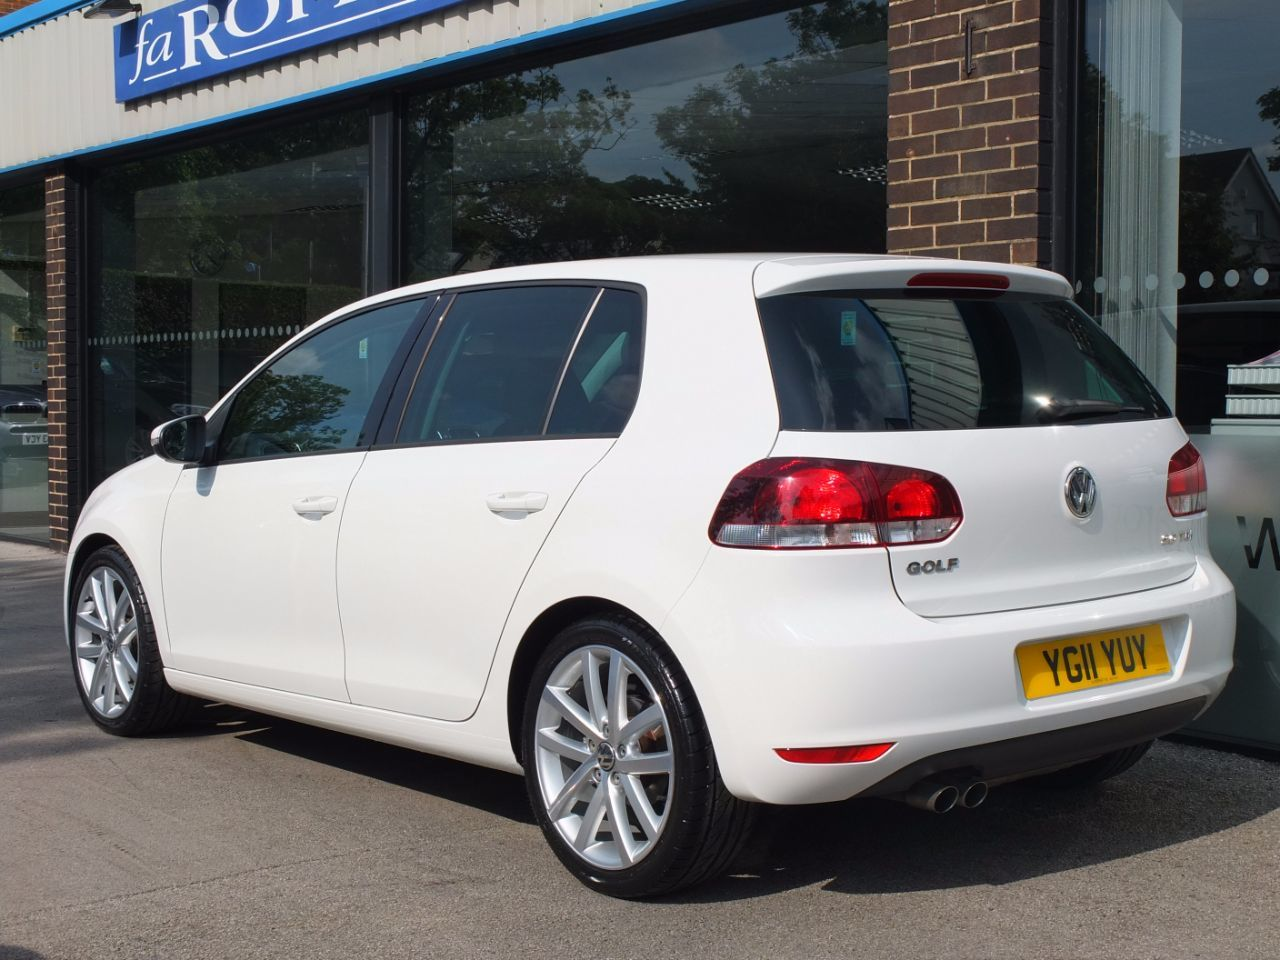 used volkswagen golf 2 0 tdi 140 gt 5 door dsg for sale in bradford west yorkshire fa roper ltd. Black Bedroom Furniture Sets. Home Design Ideas